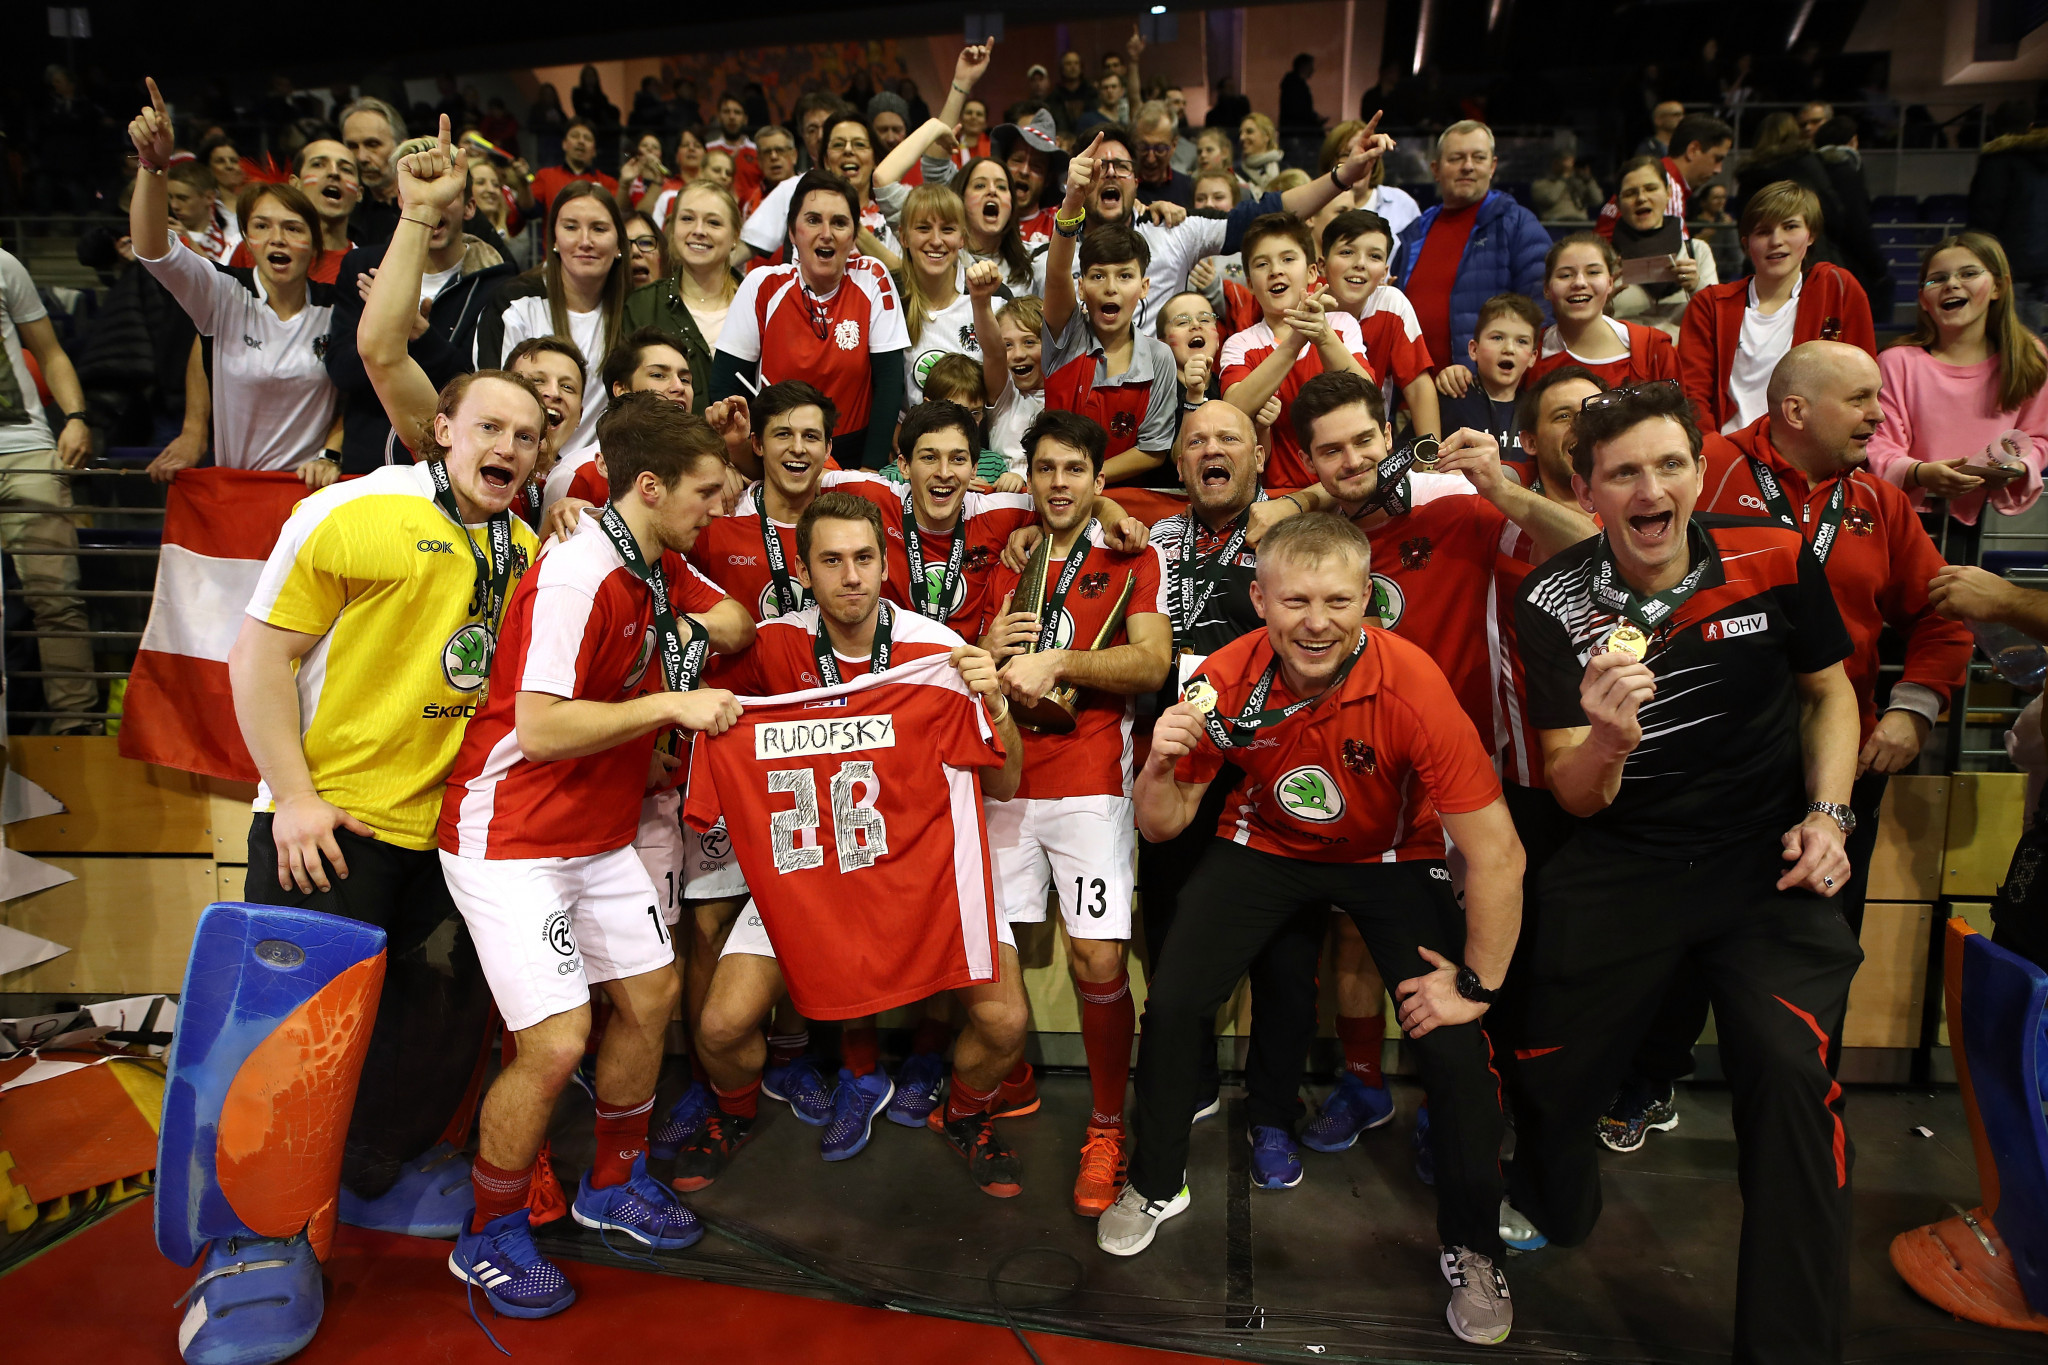 Austria won the men's Indoor Hockey World Cup in 2018, which will take place in February next year in Belgium ©Getty Images